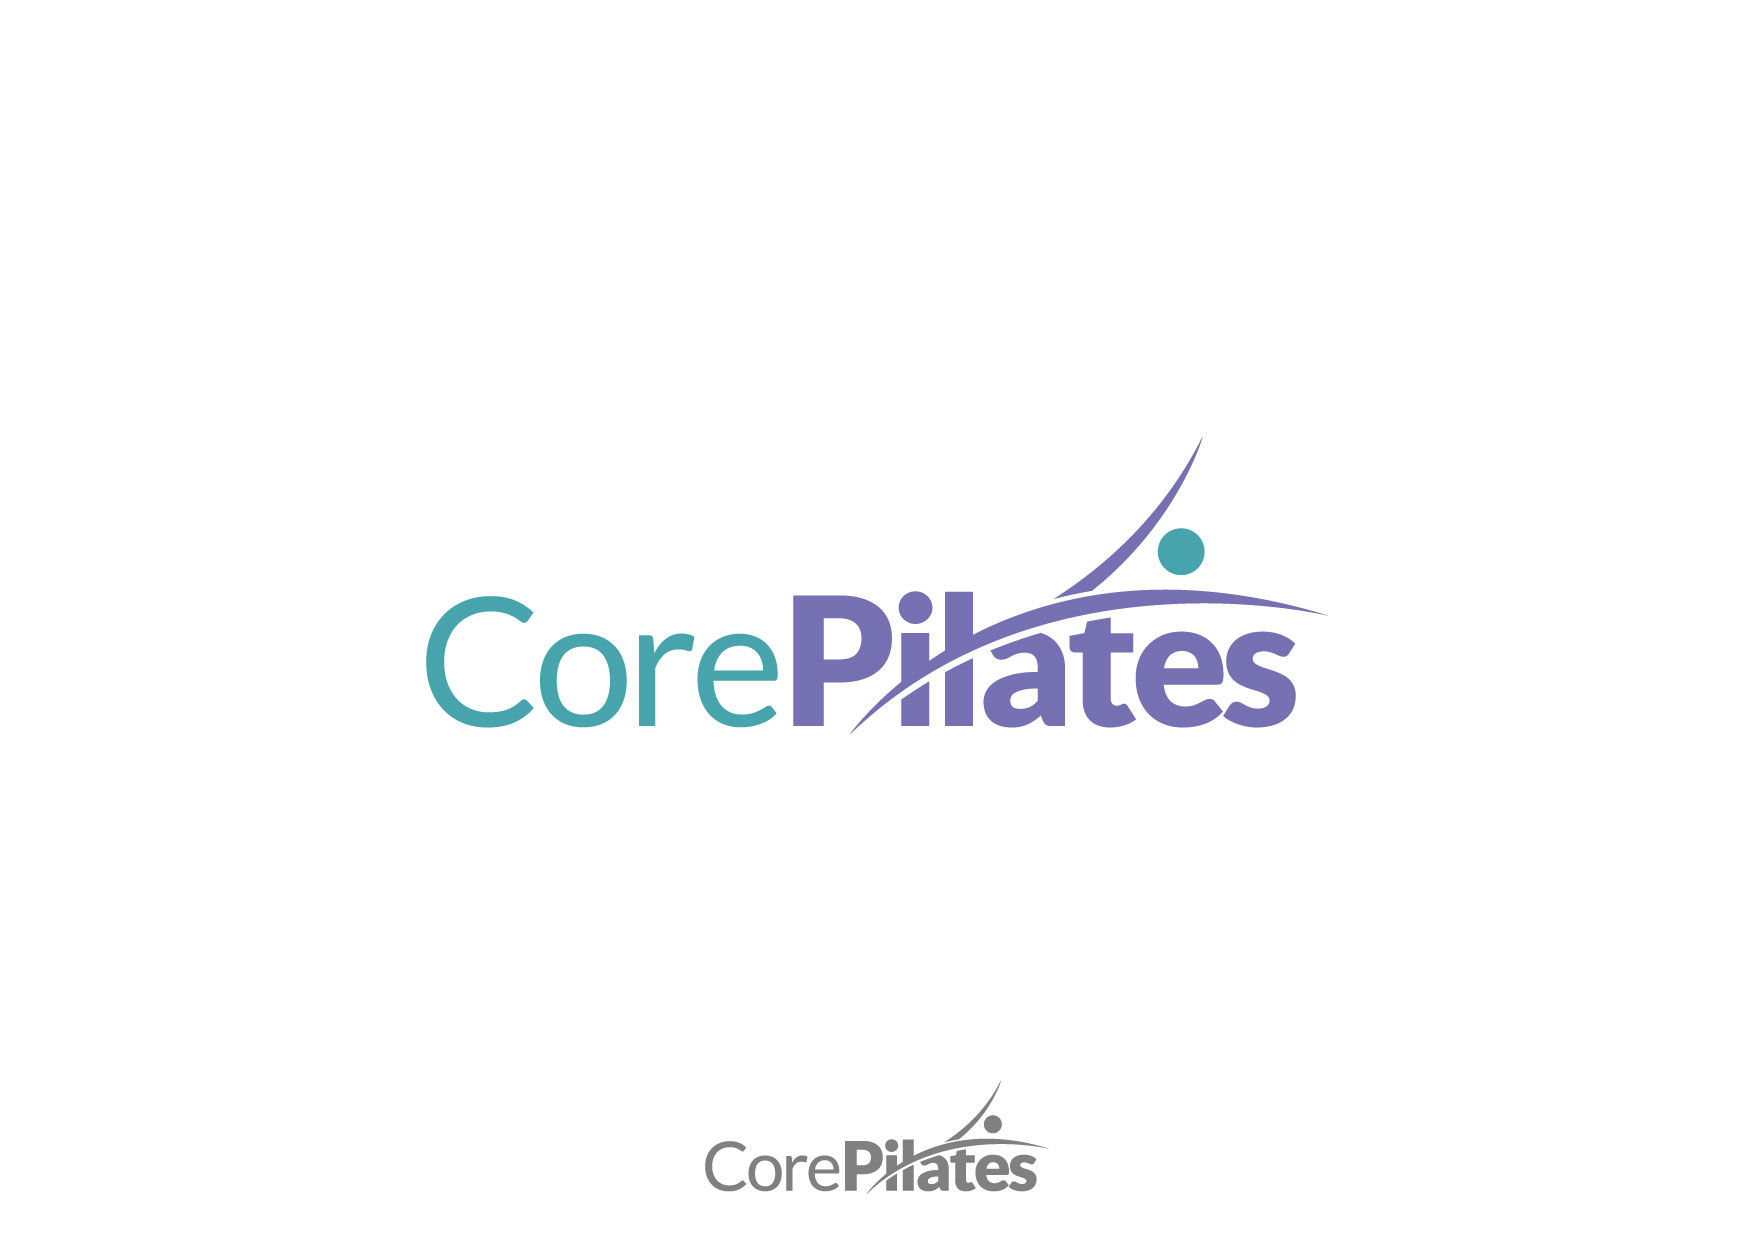 Logo Design by Nurgalih Destianto - Entry No. 27 in the Logo Design Contest Core Pilates Logo Design.